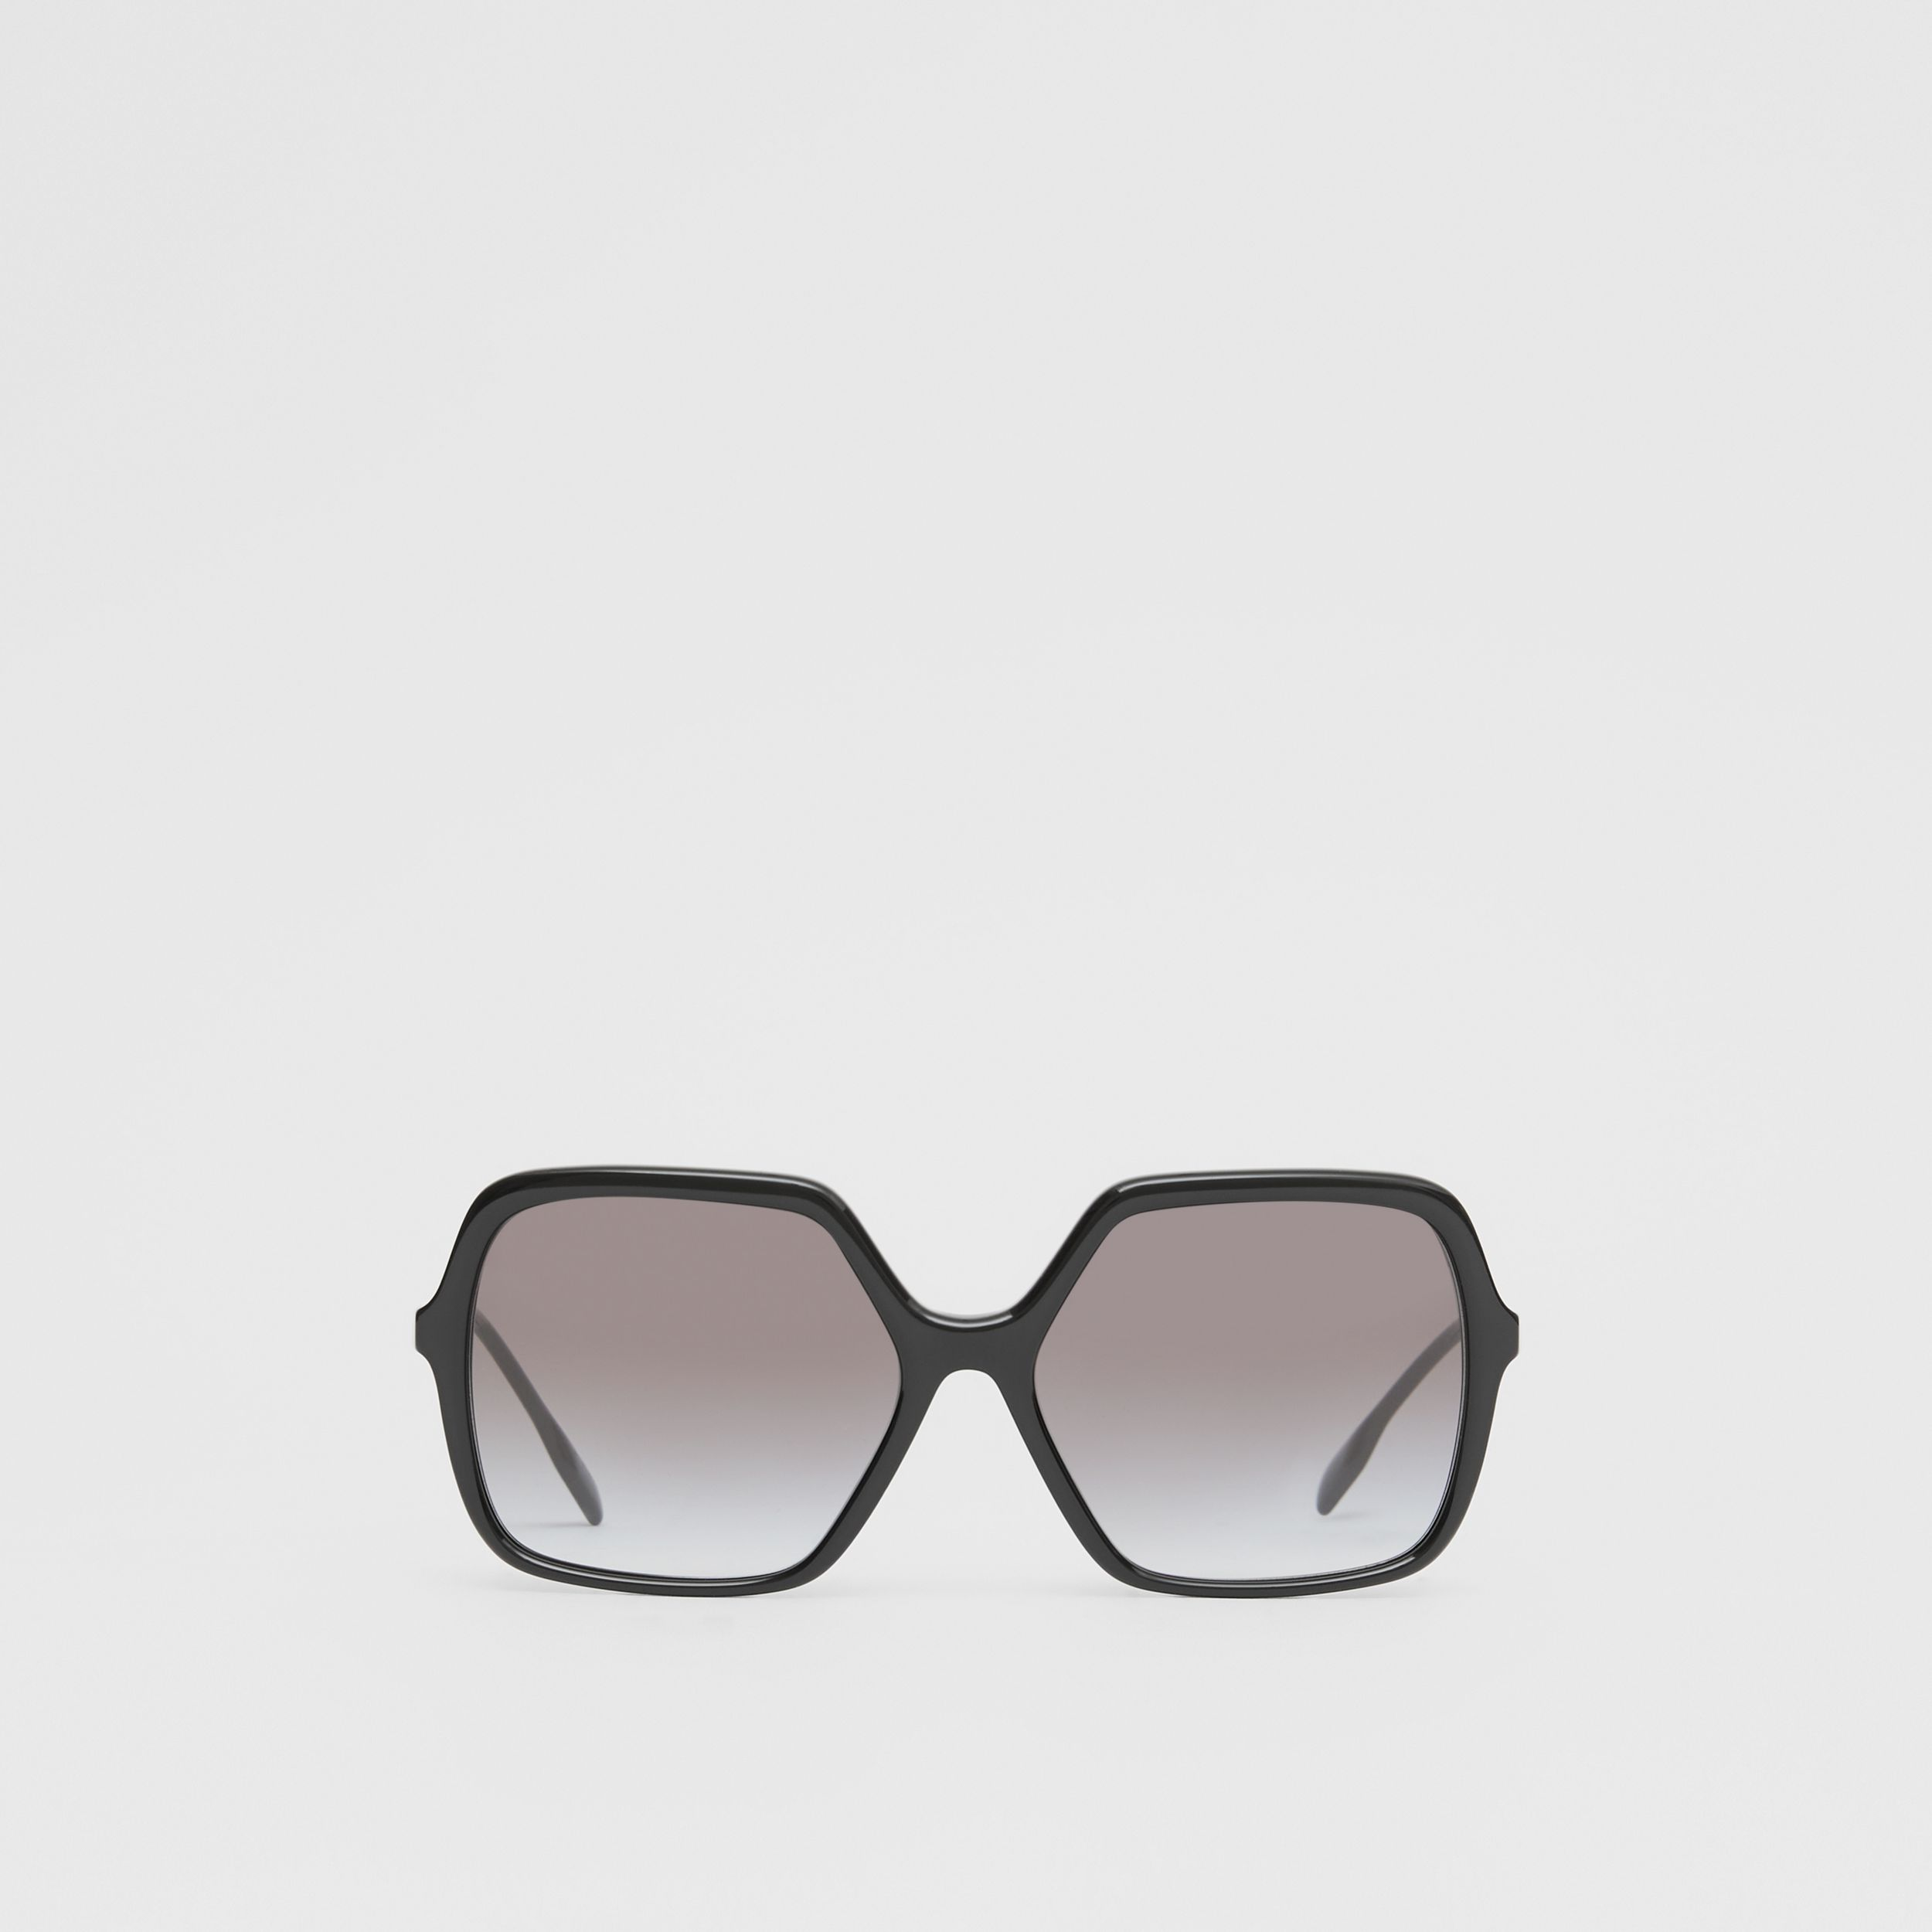 Oversized Square Frame Sunglasses in Black - Women | Burberry United Kingdom - 1